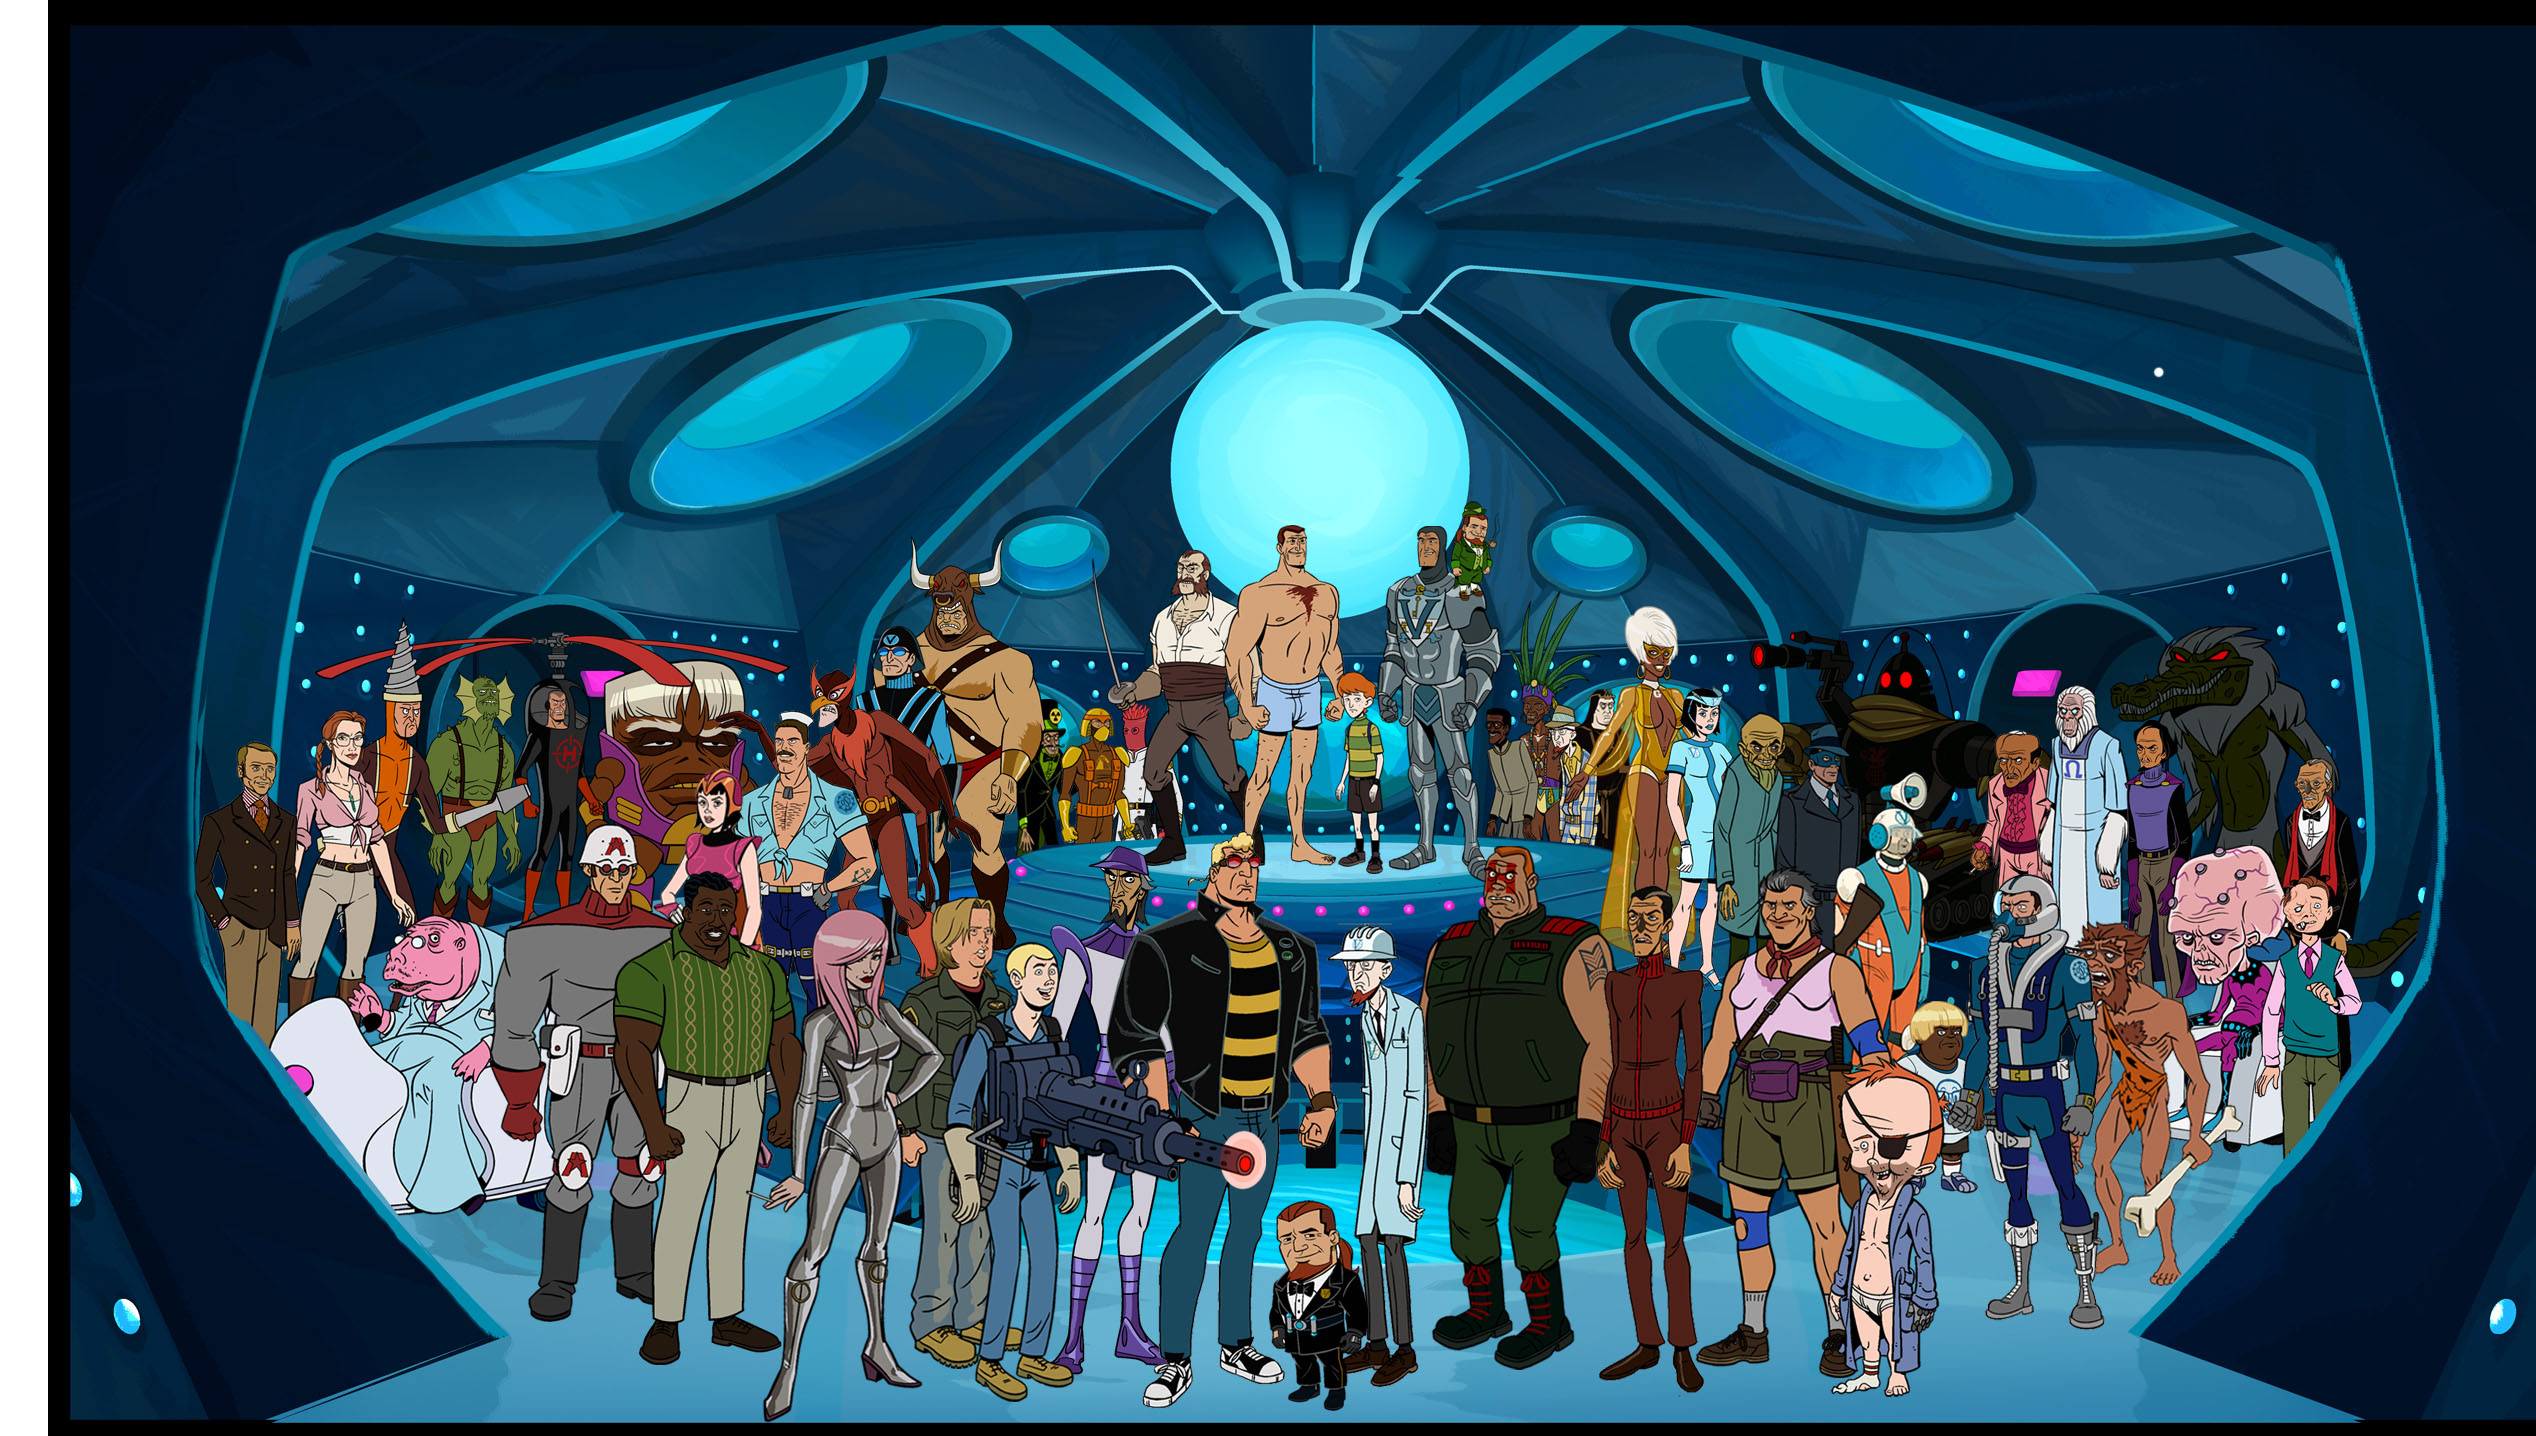 The Venture Bros HD Wallpaper Background Image 2536x1436 ID 2536x1436